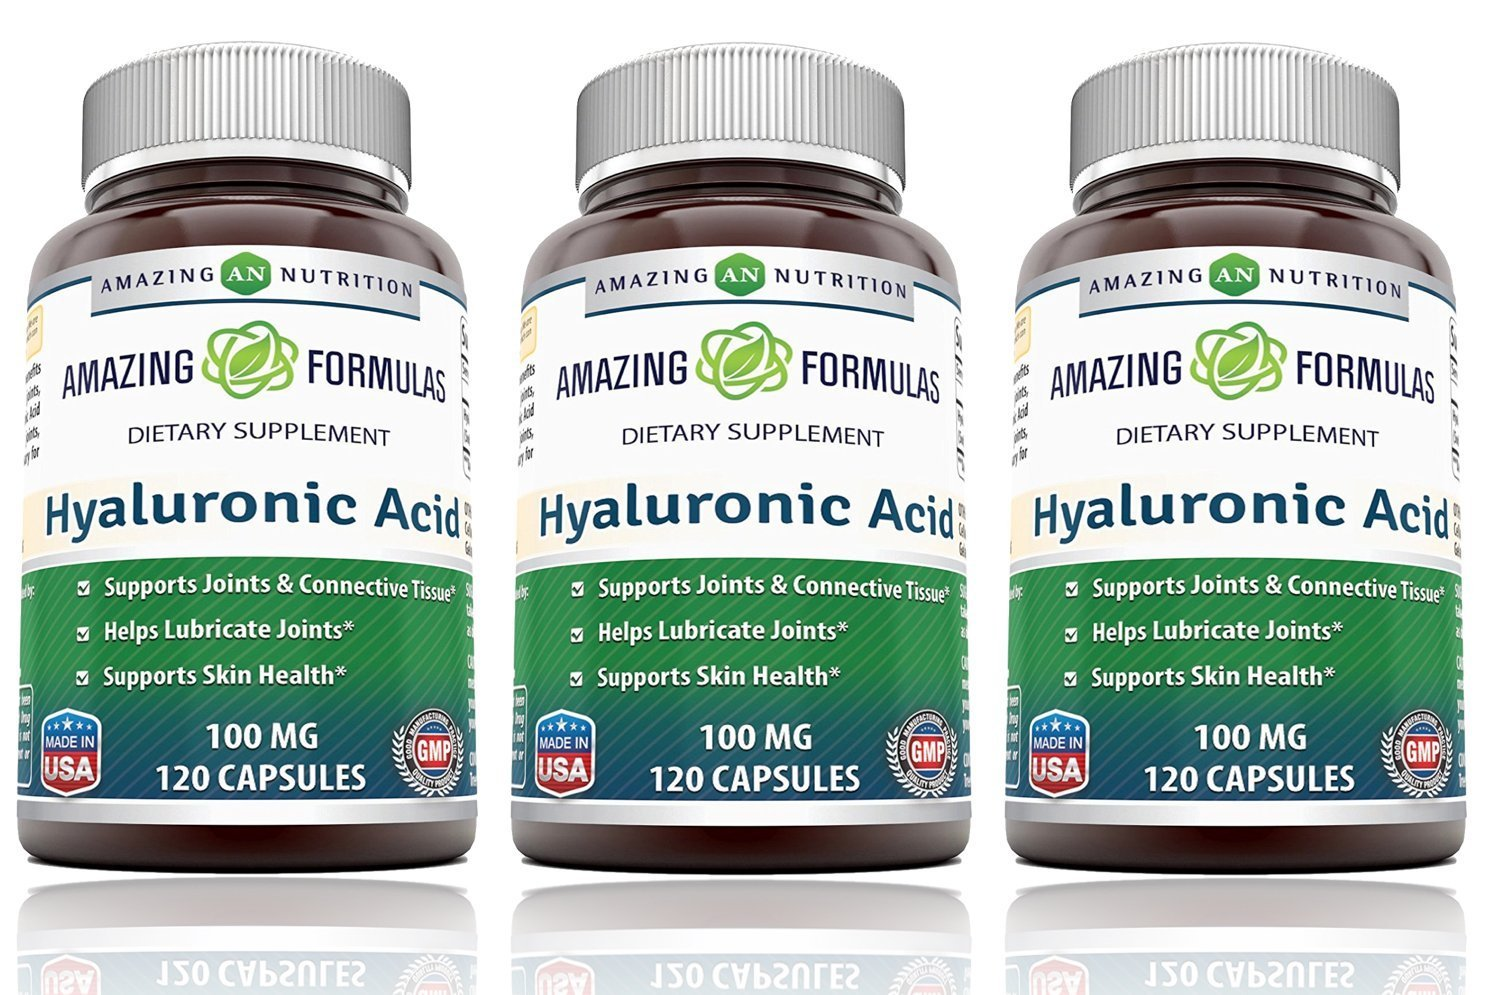 Amazing Formulas Hyaluronic Acid 100 mg Capsules (Non-GMO) - Support Healthy Connective Tissue and Joints - Promote Youthful Healthy Skin (120 Count (Pack of 3))